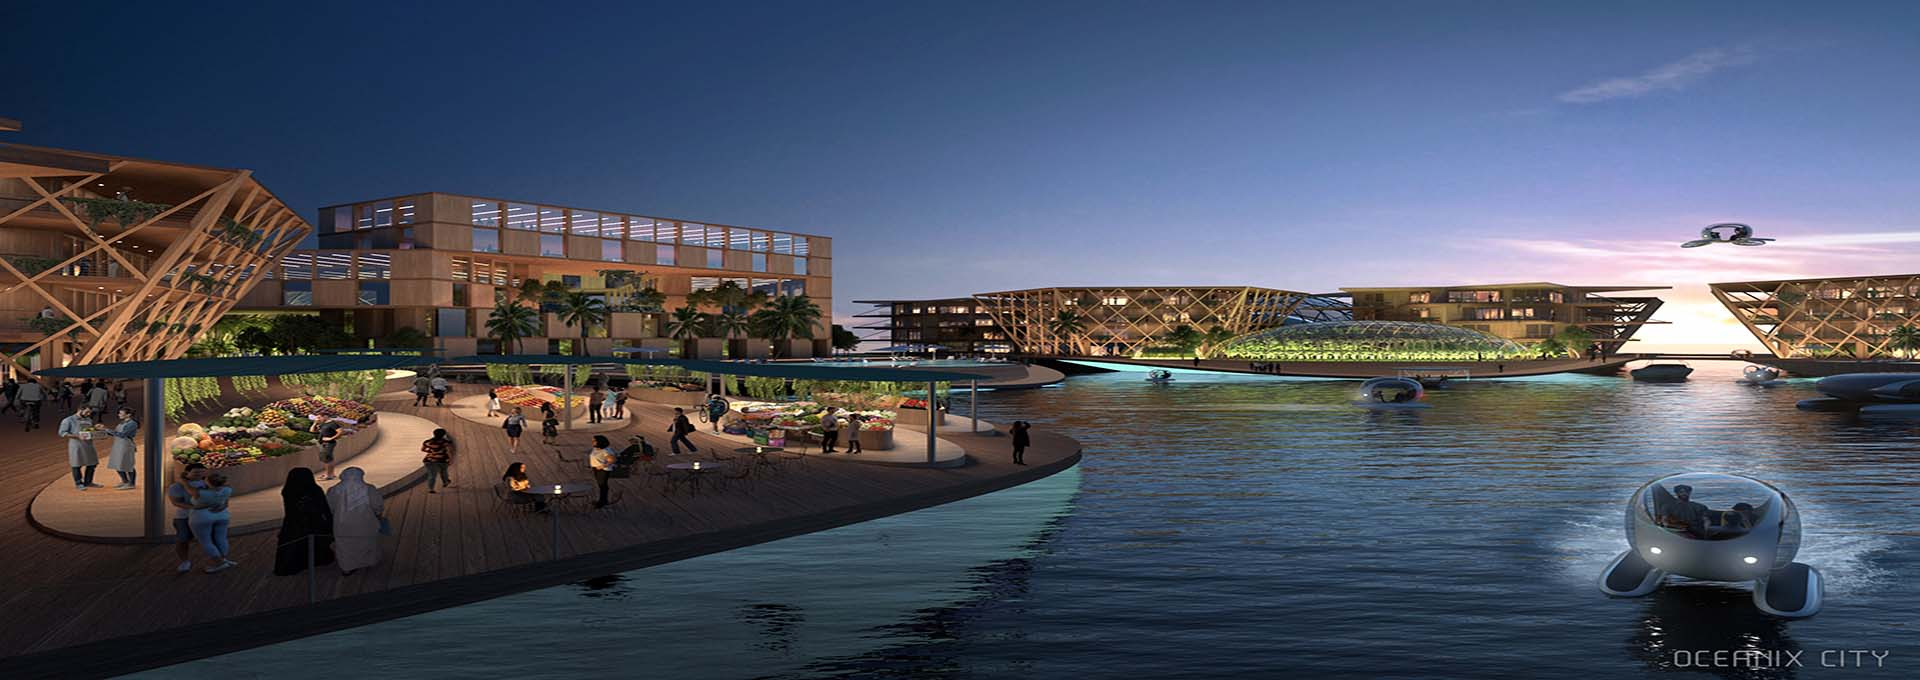 Danish architects, Bjarke Ingels Group's Oceanix City.